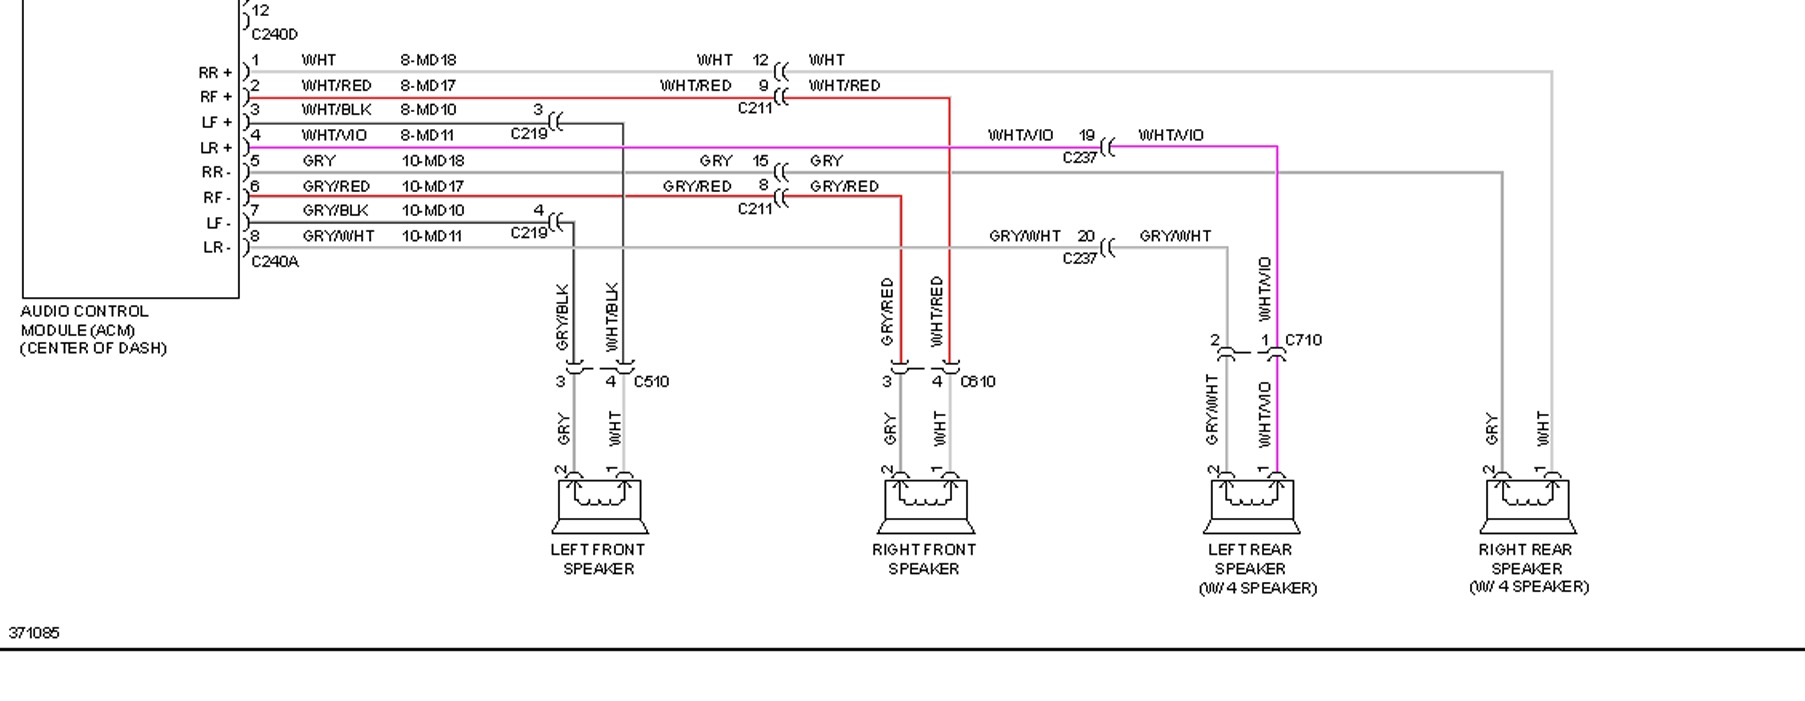 ford transit radio wiring diagram home electrical software connect best library 2010 van diagrams one rh 64 moikensmarmelaedchen de